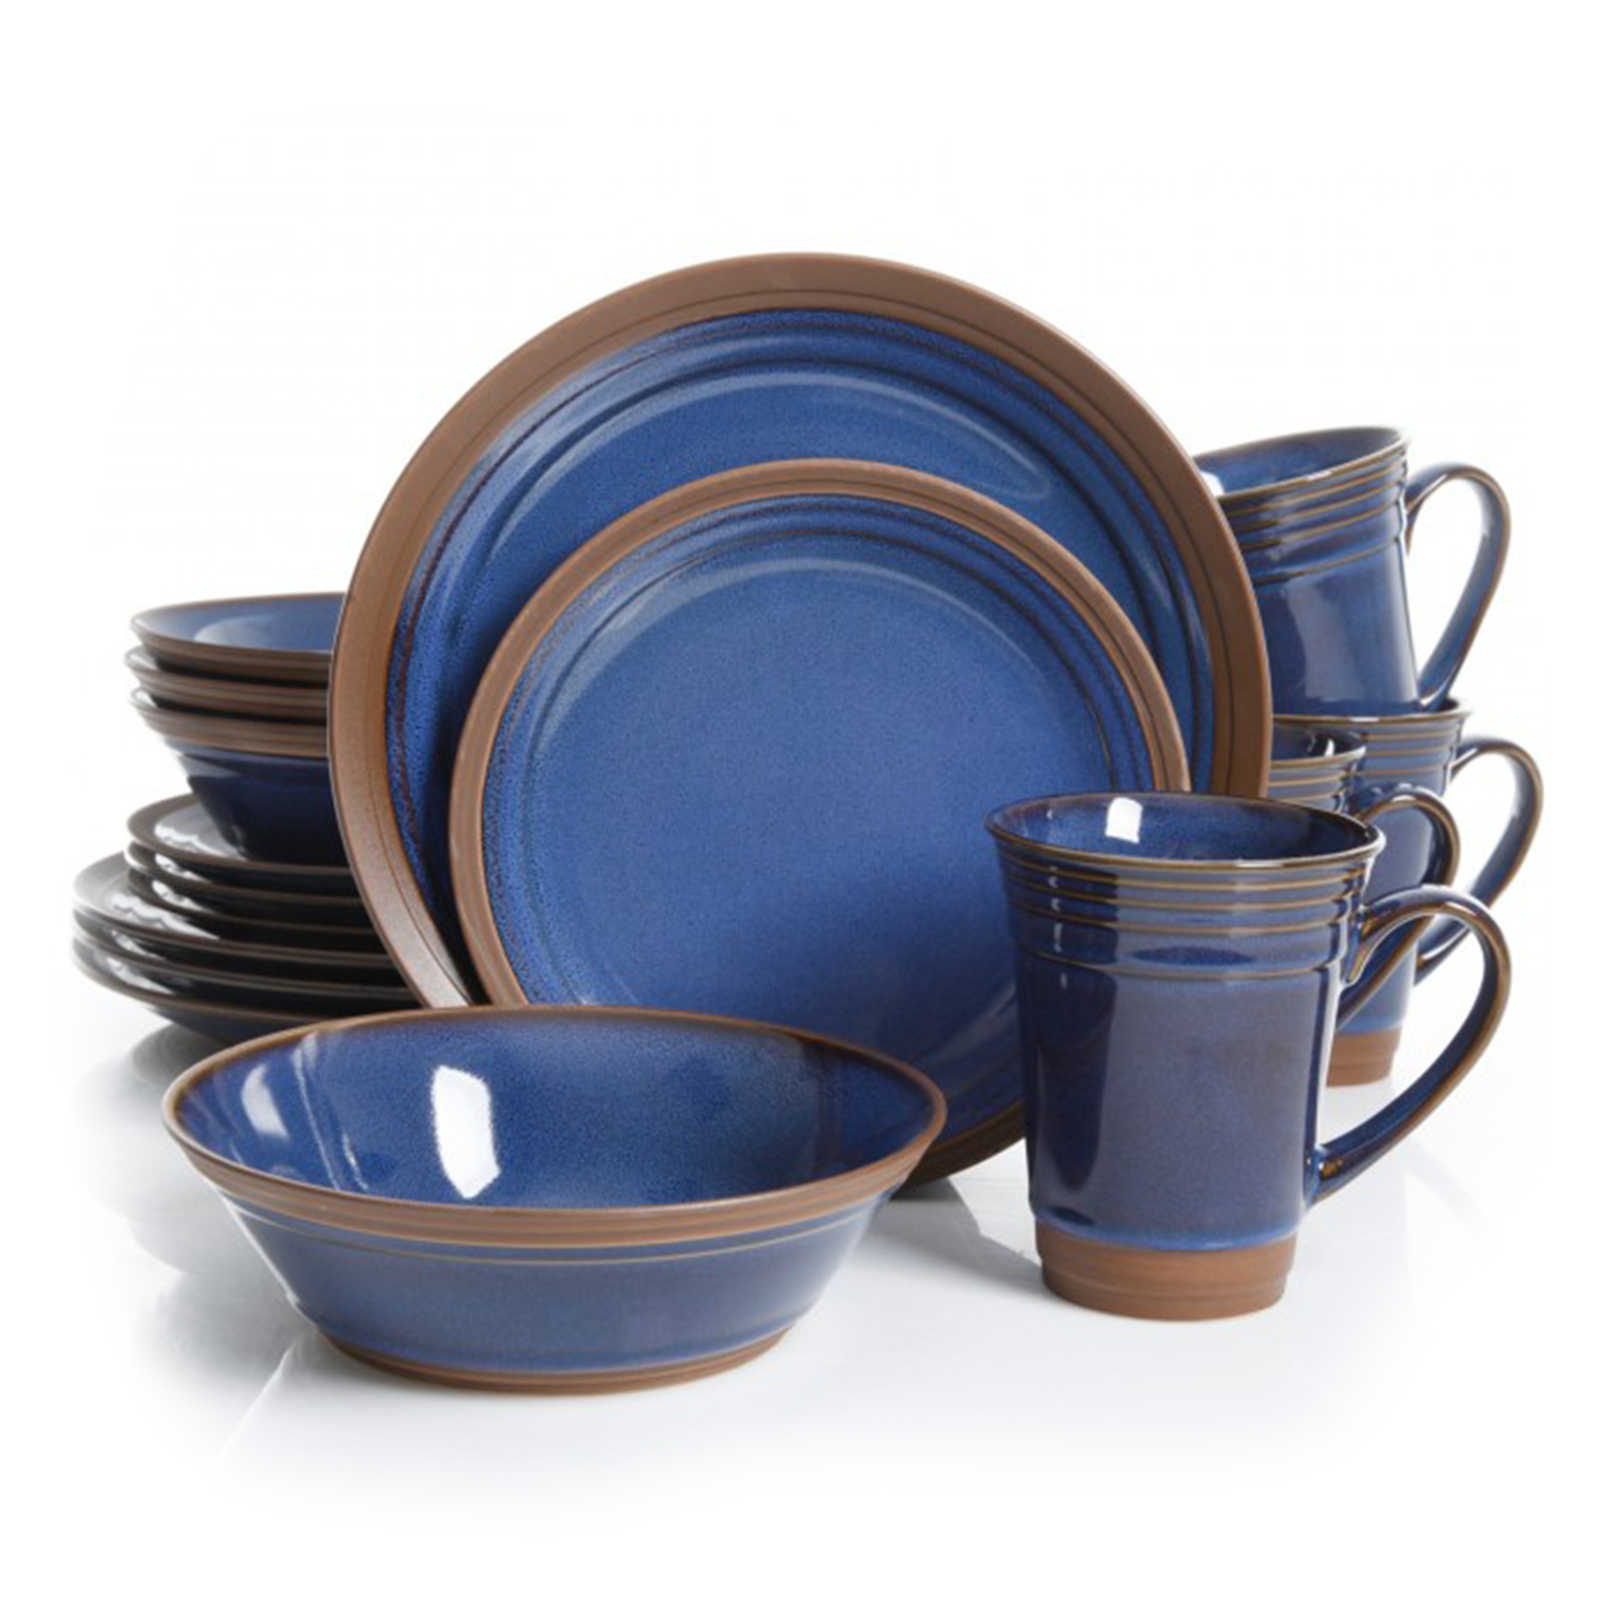 Gibson Elite Brynn 16 Piece Stoneware Dinnerware Set in Blue  sc 1 st  Walmart & Gibson Elite Brynn 16 Piece Stoneware Dinnerware Set in Blue ...